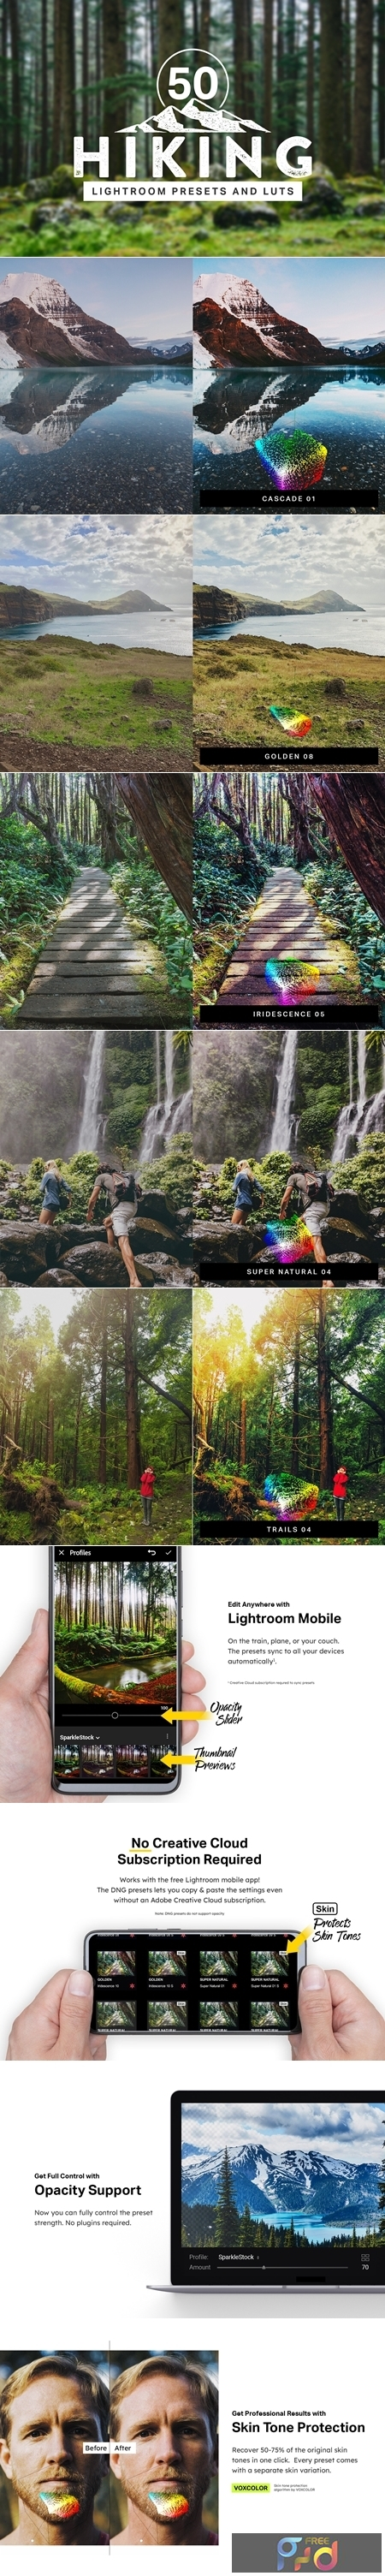 50 Hiking Lightroom Presets and LUTs 4319189 1